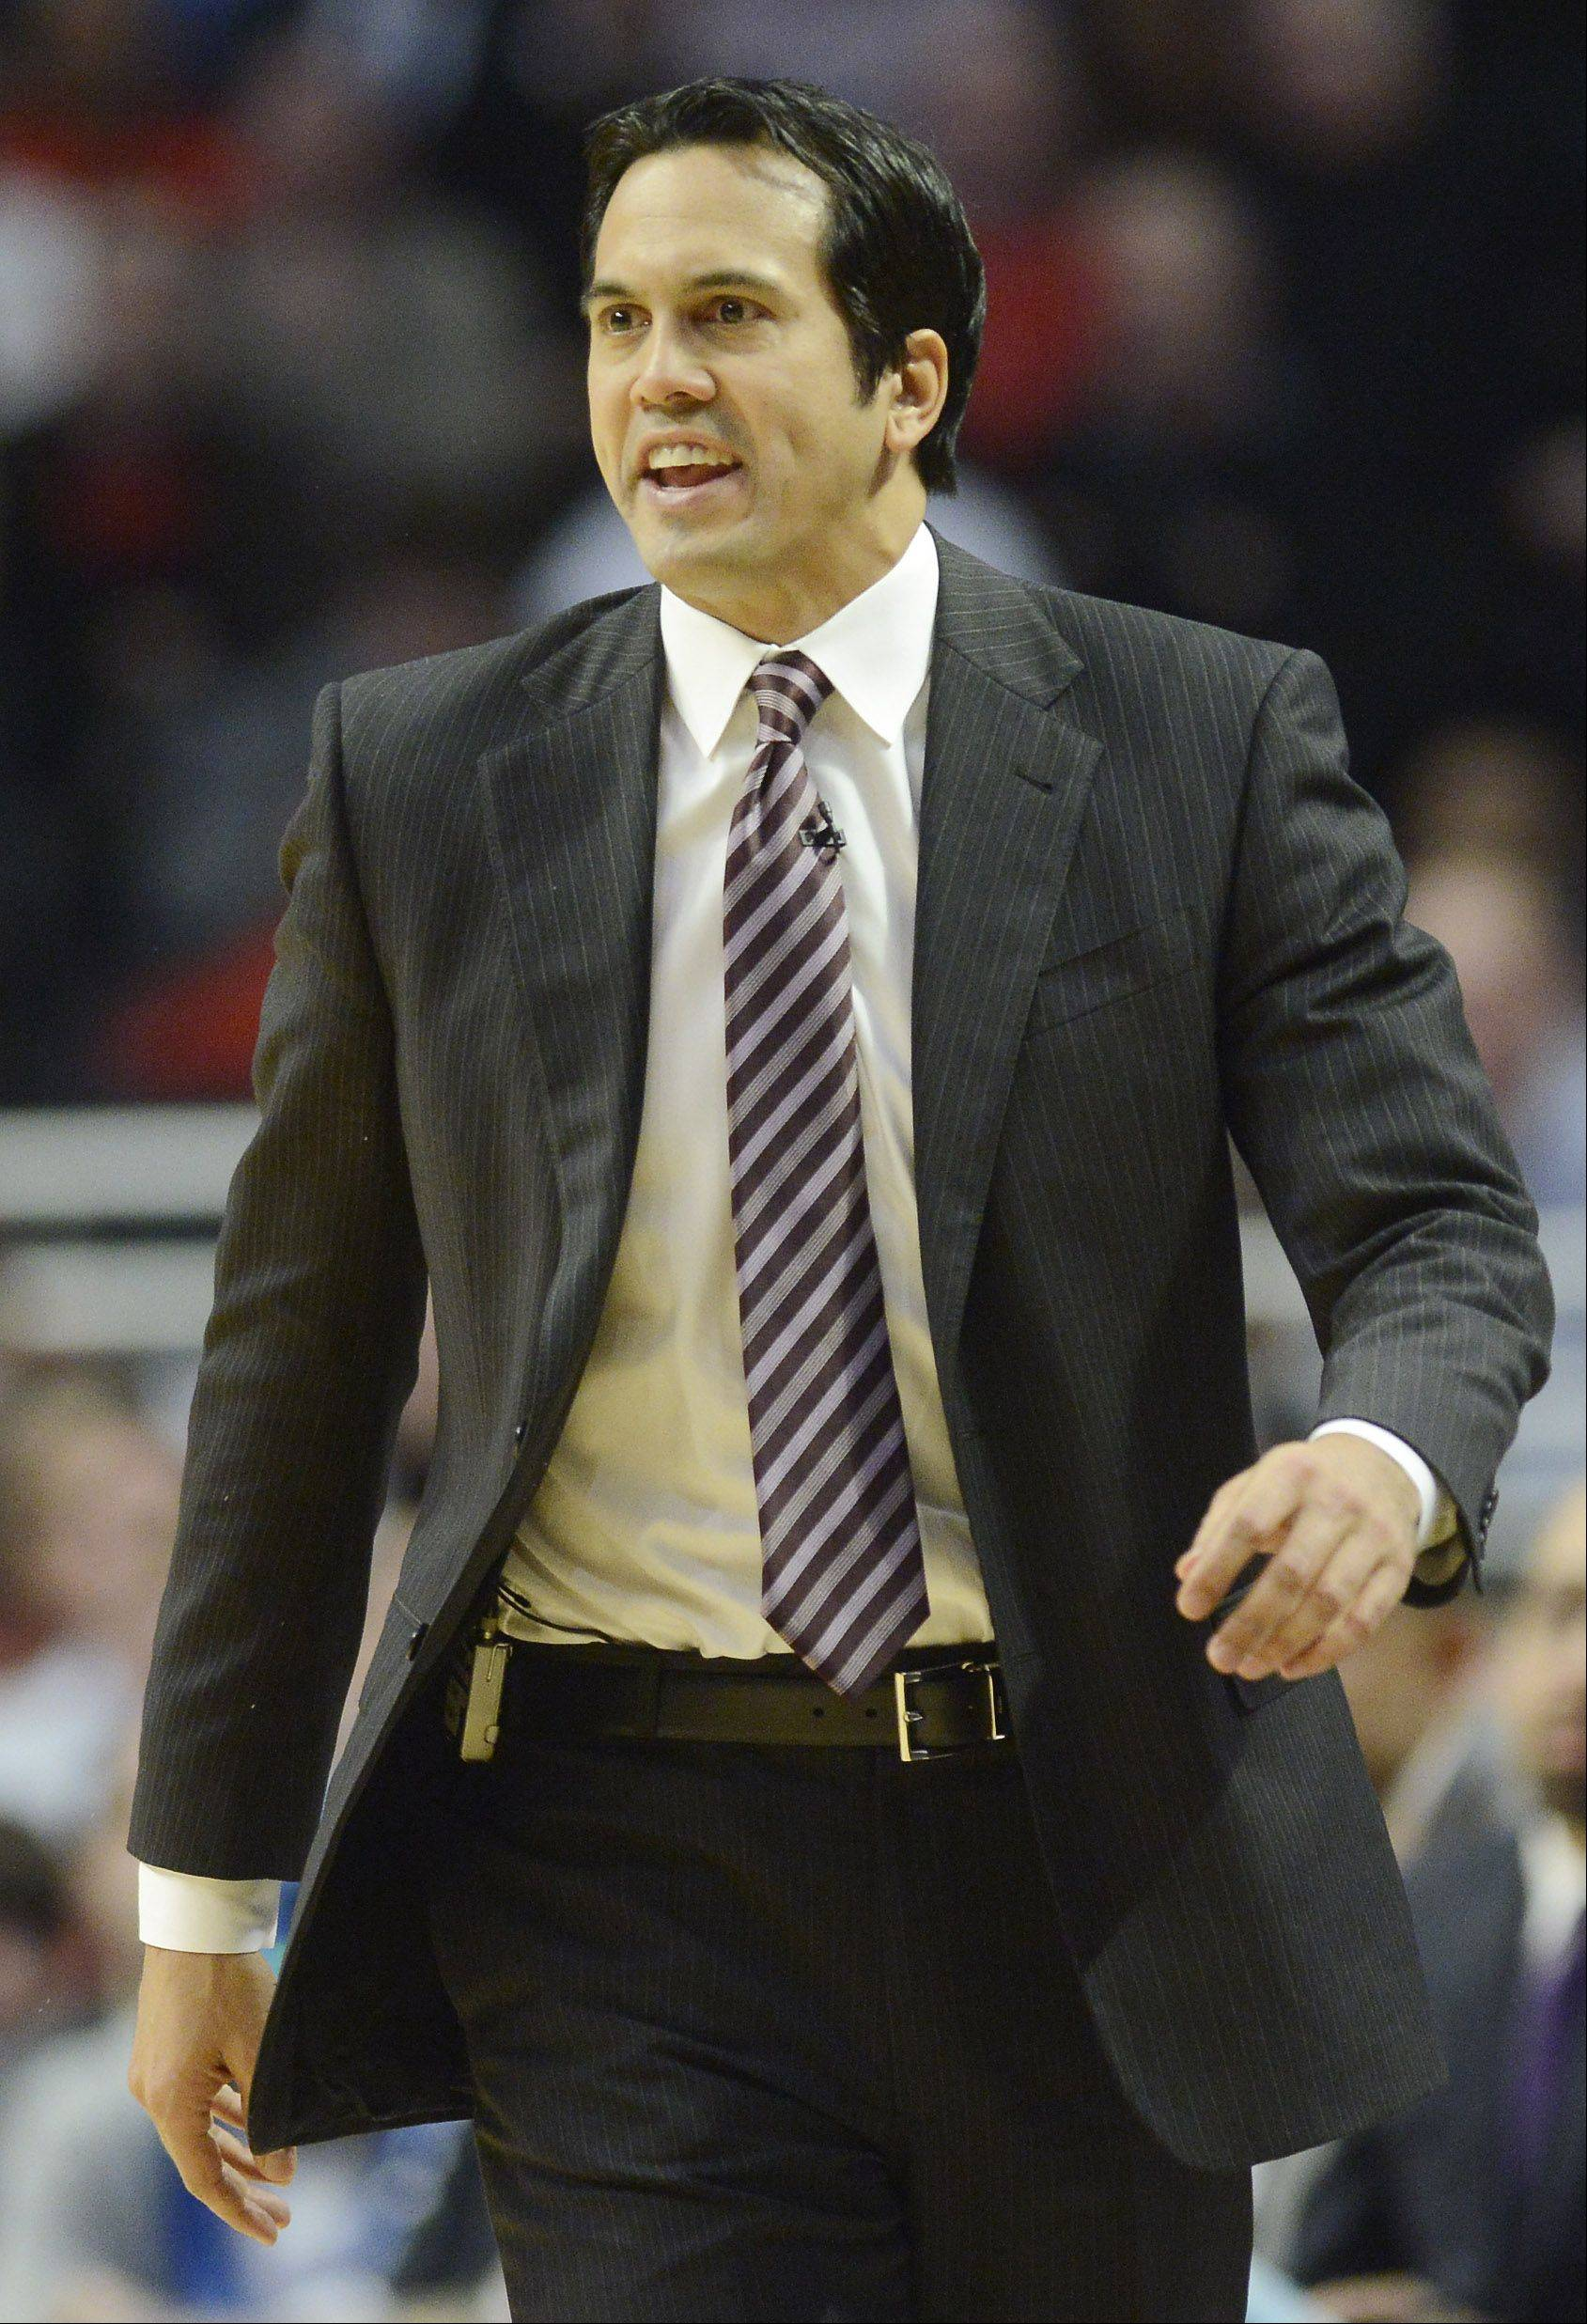 Miami Heat coach Erik Spoelstra leads his team during Wednesday's game against the Bulls.